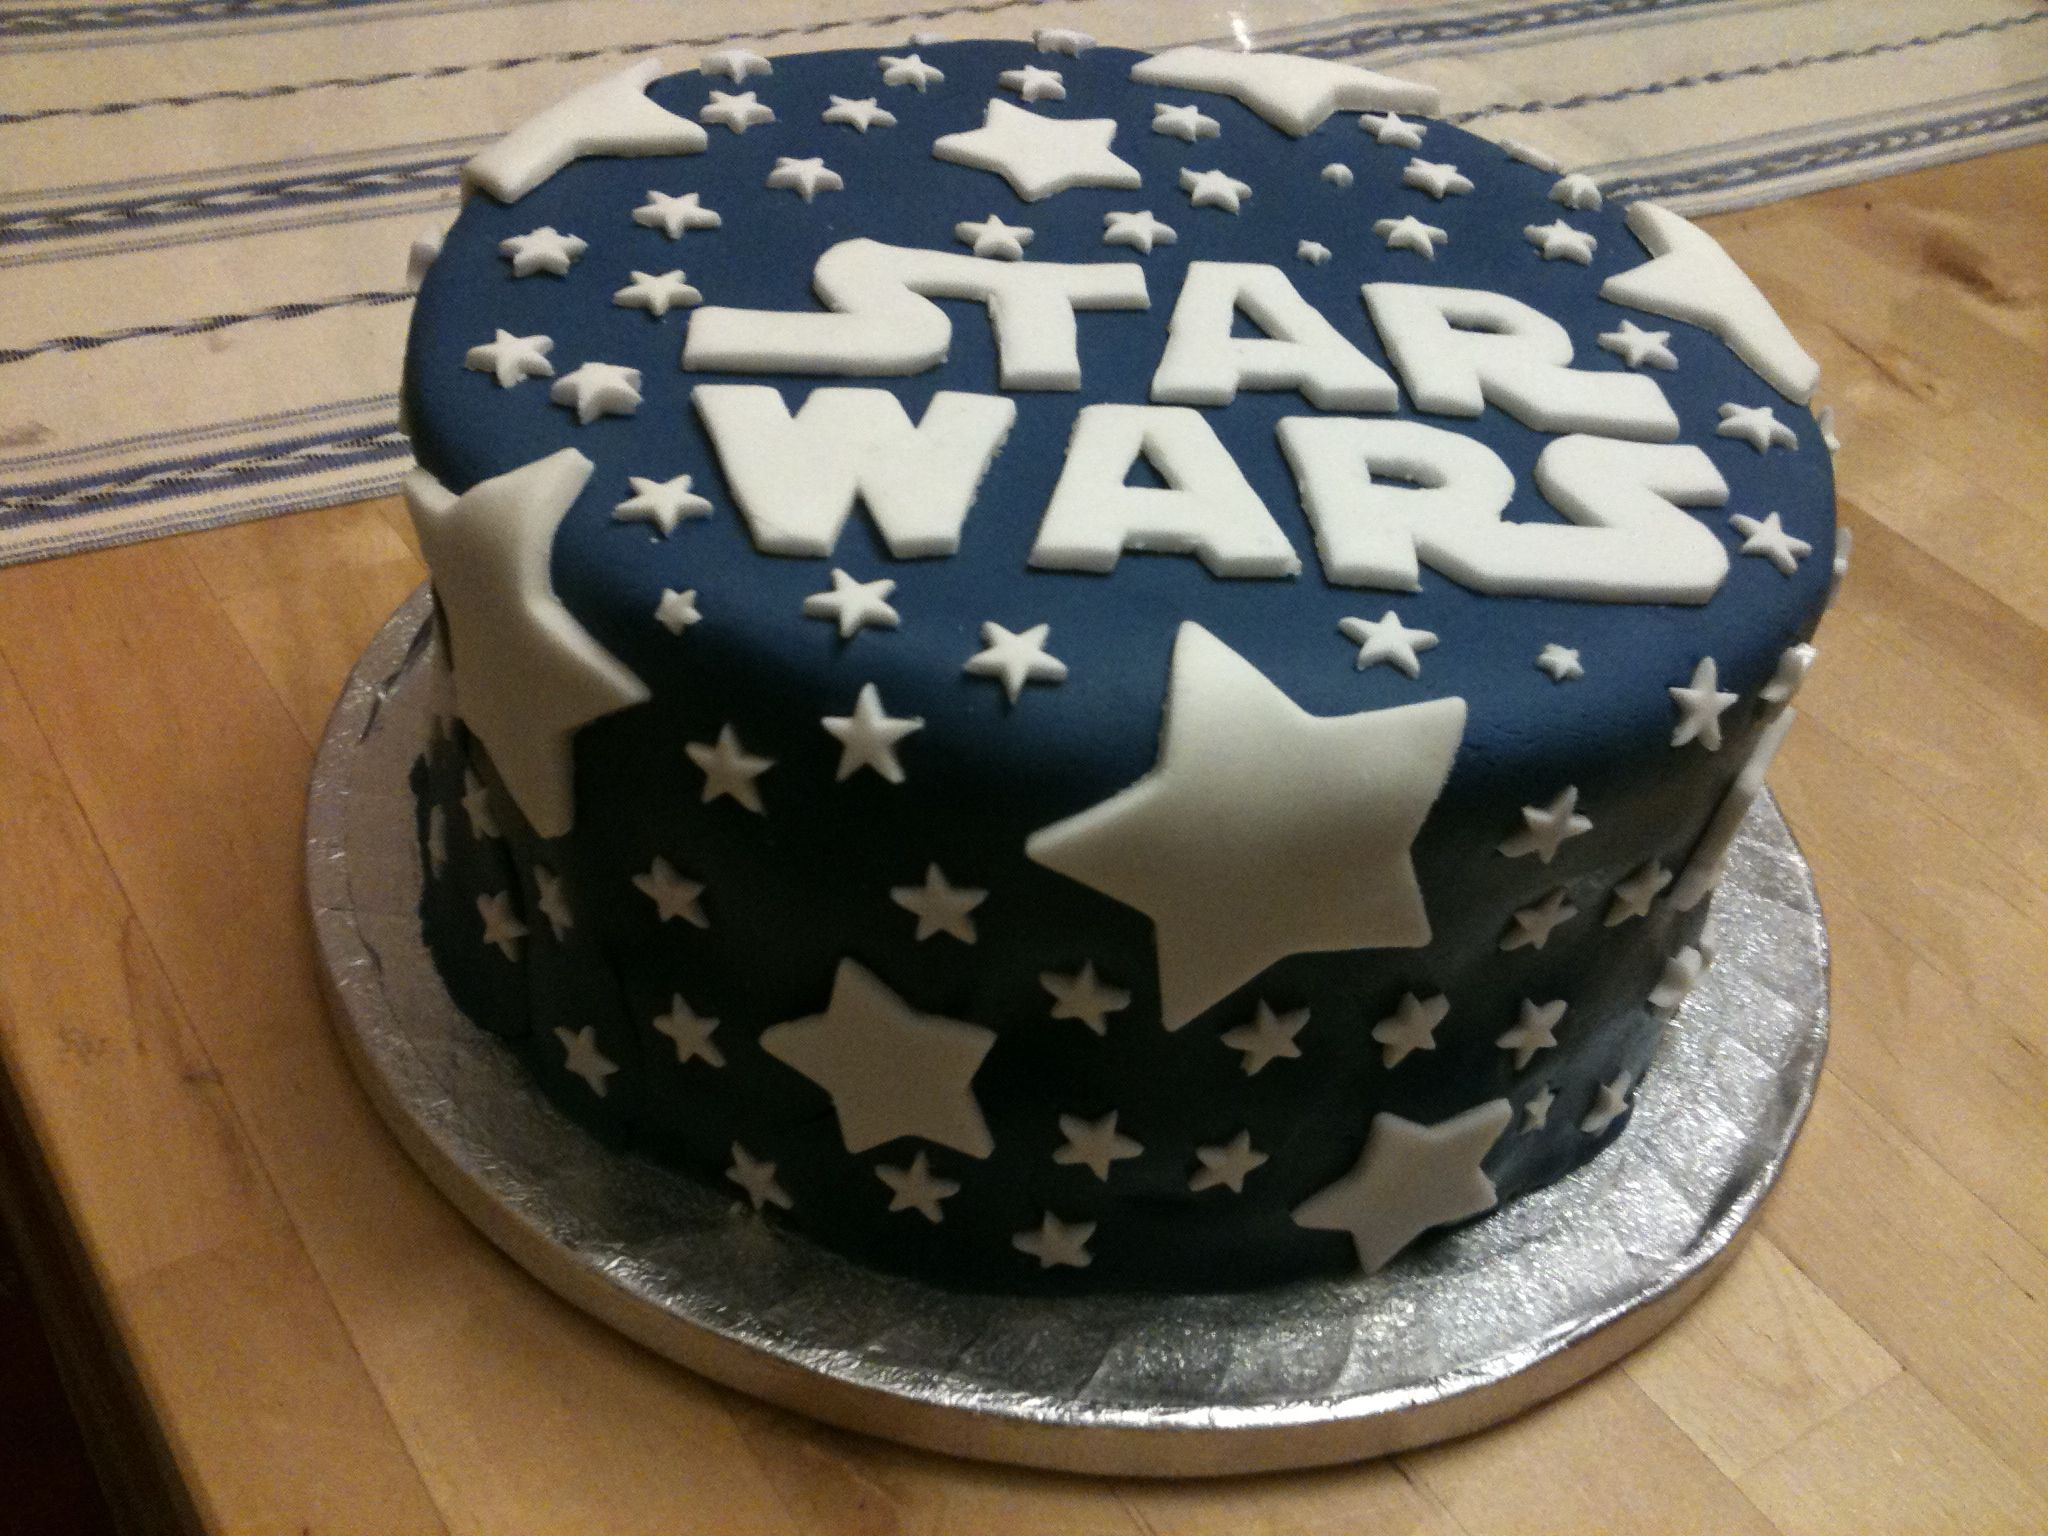 Remarkable Super Easy But Effective Star Wars Cake With Images Star Wars Birthday Cards Printable Giouspongecafe Filternl